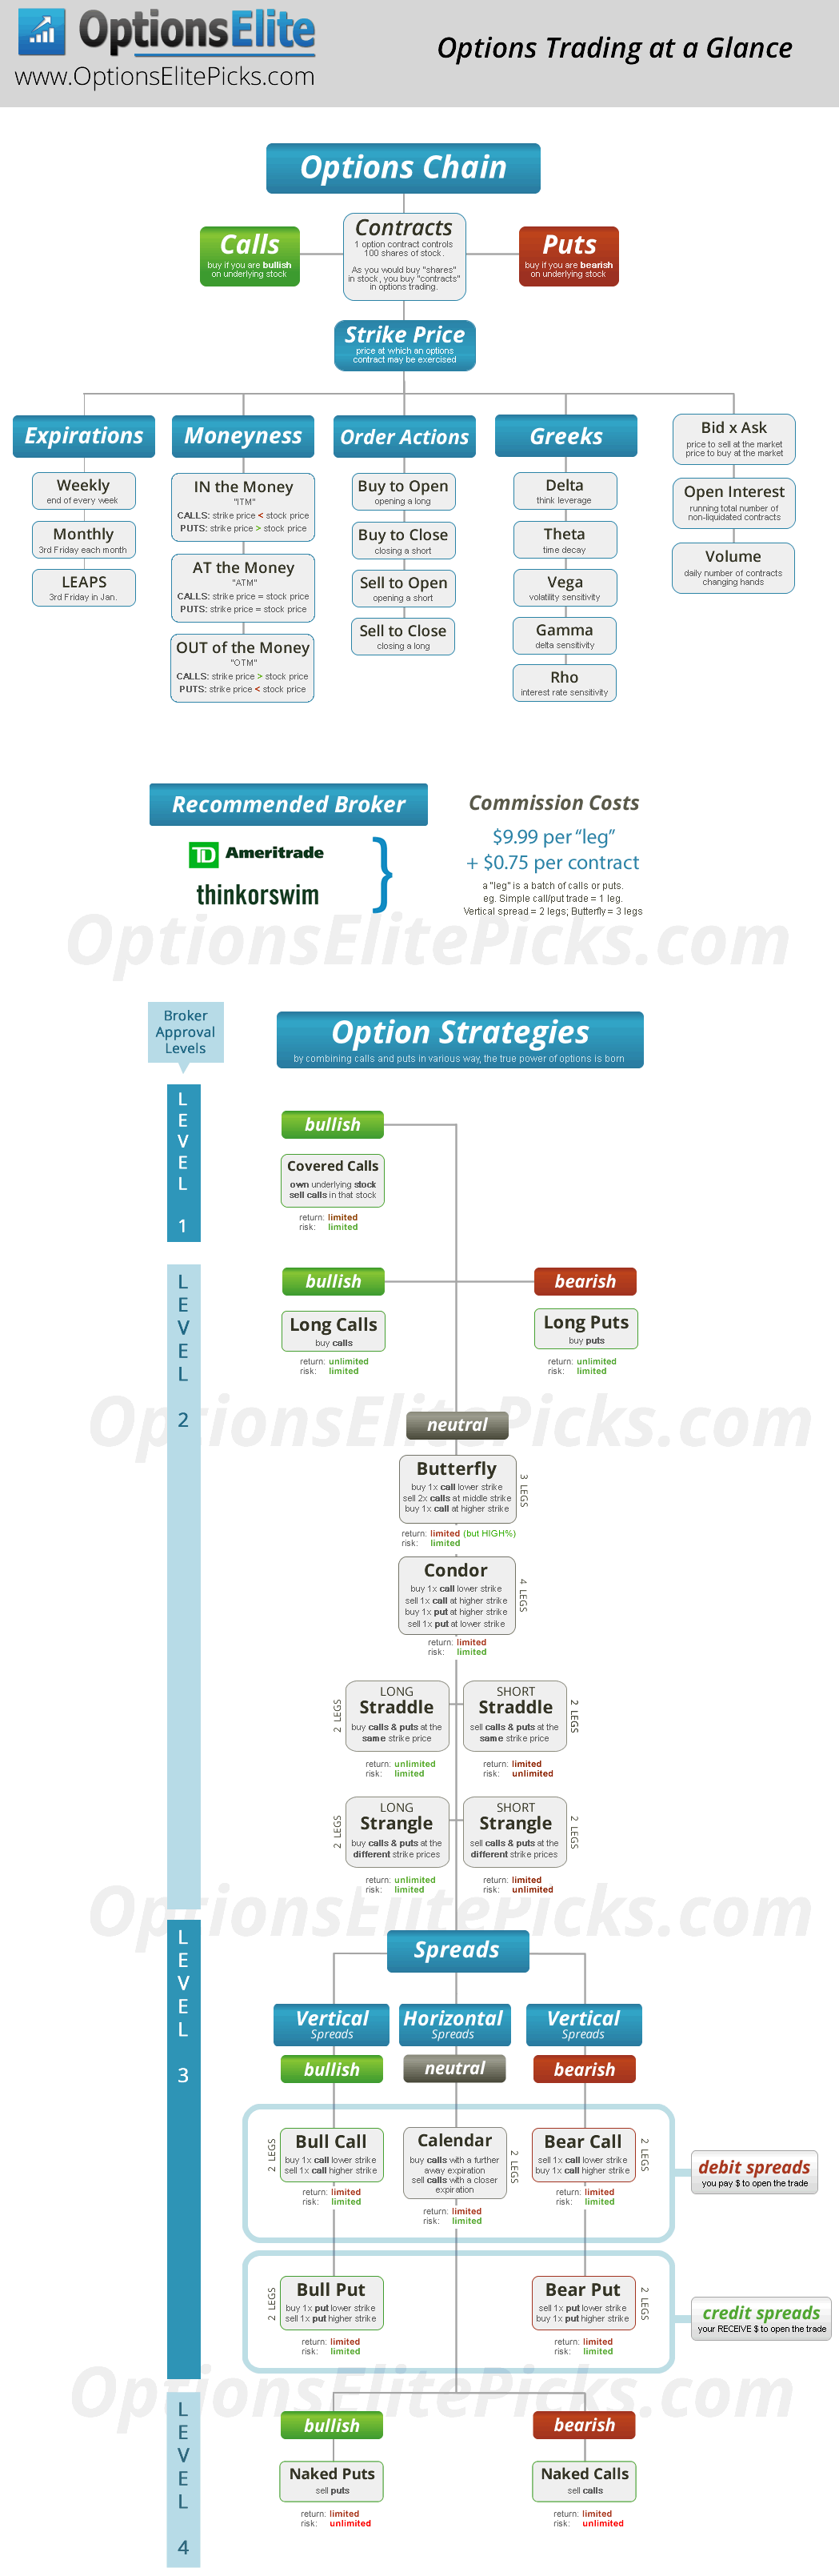 Selecting stocks for options trading